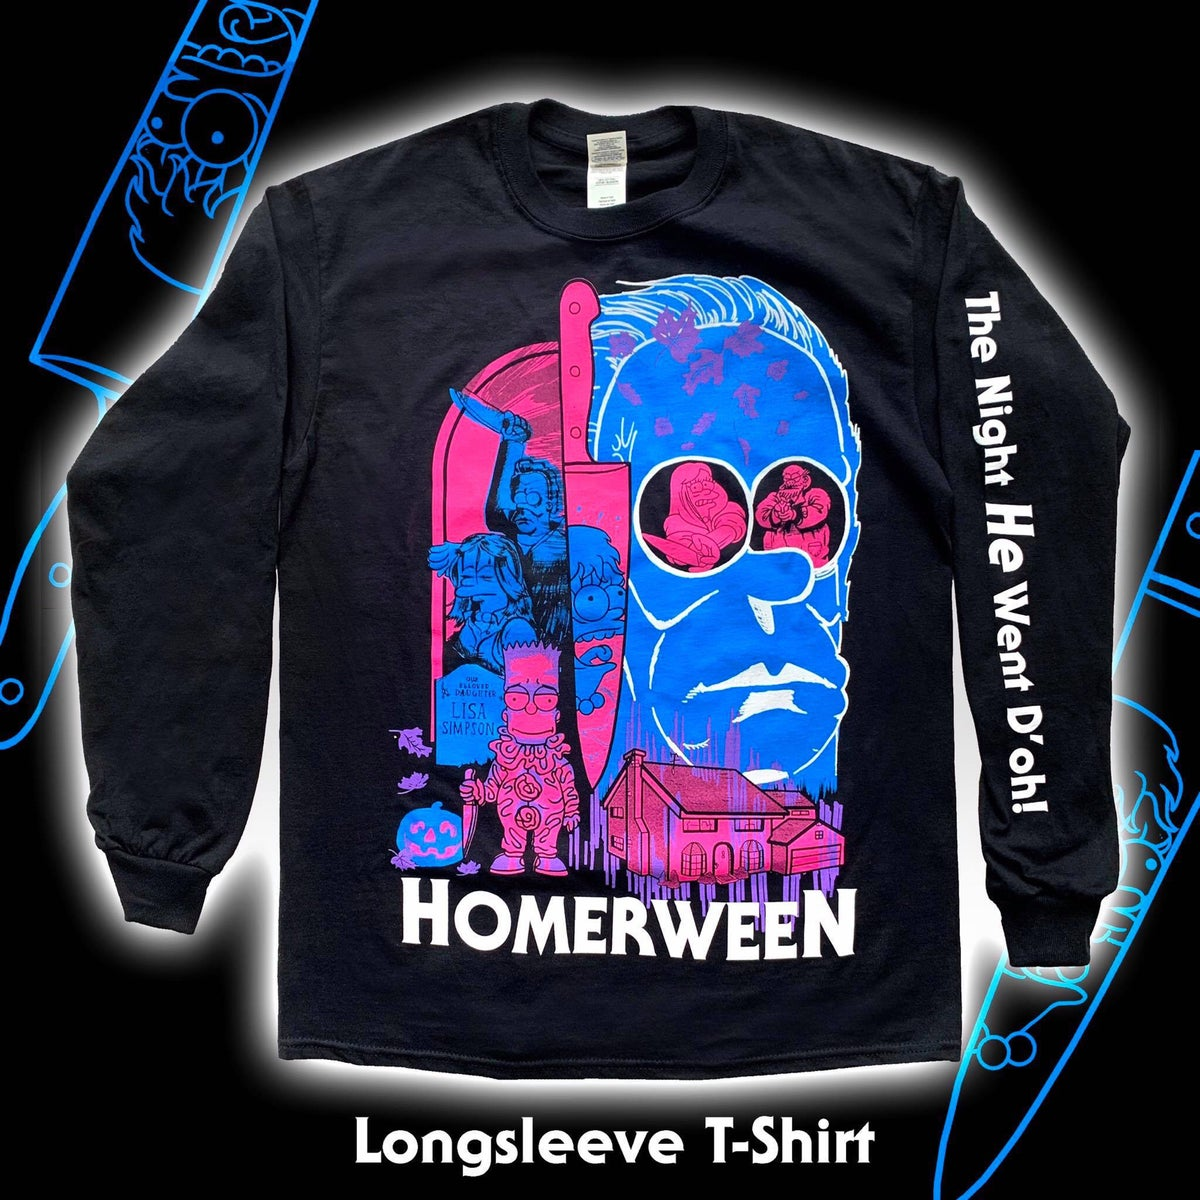 Image of Homerween Screen-printed Longsleeve